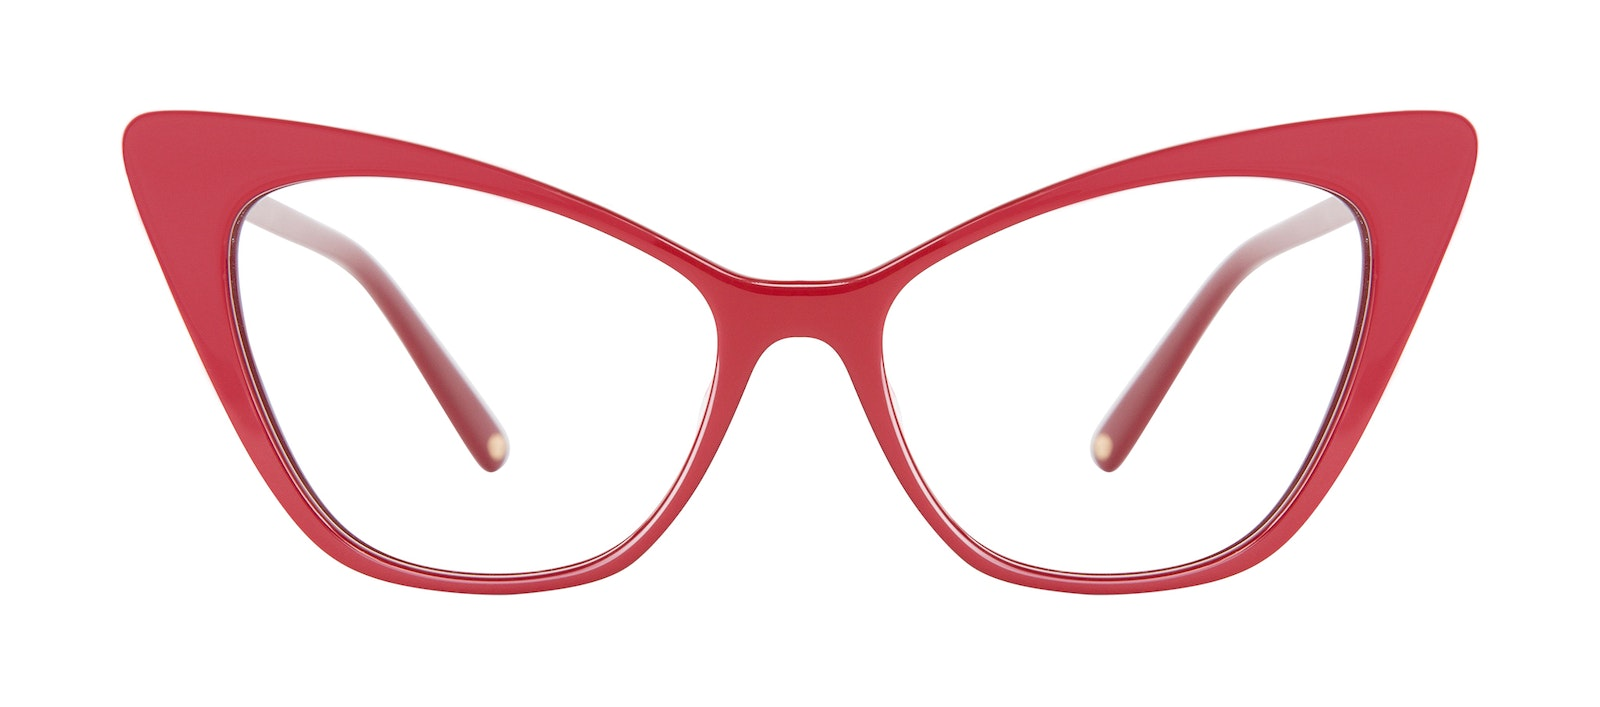 Affordable Fashion Glasses Cat Eye Eyeglasses Women Keiko Lynn Ryder Red Front